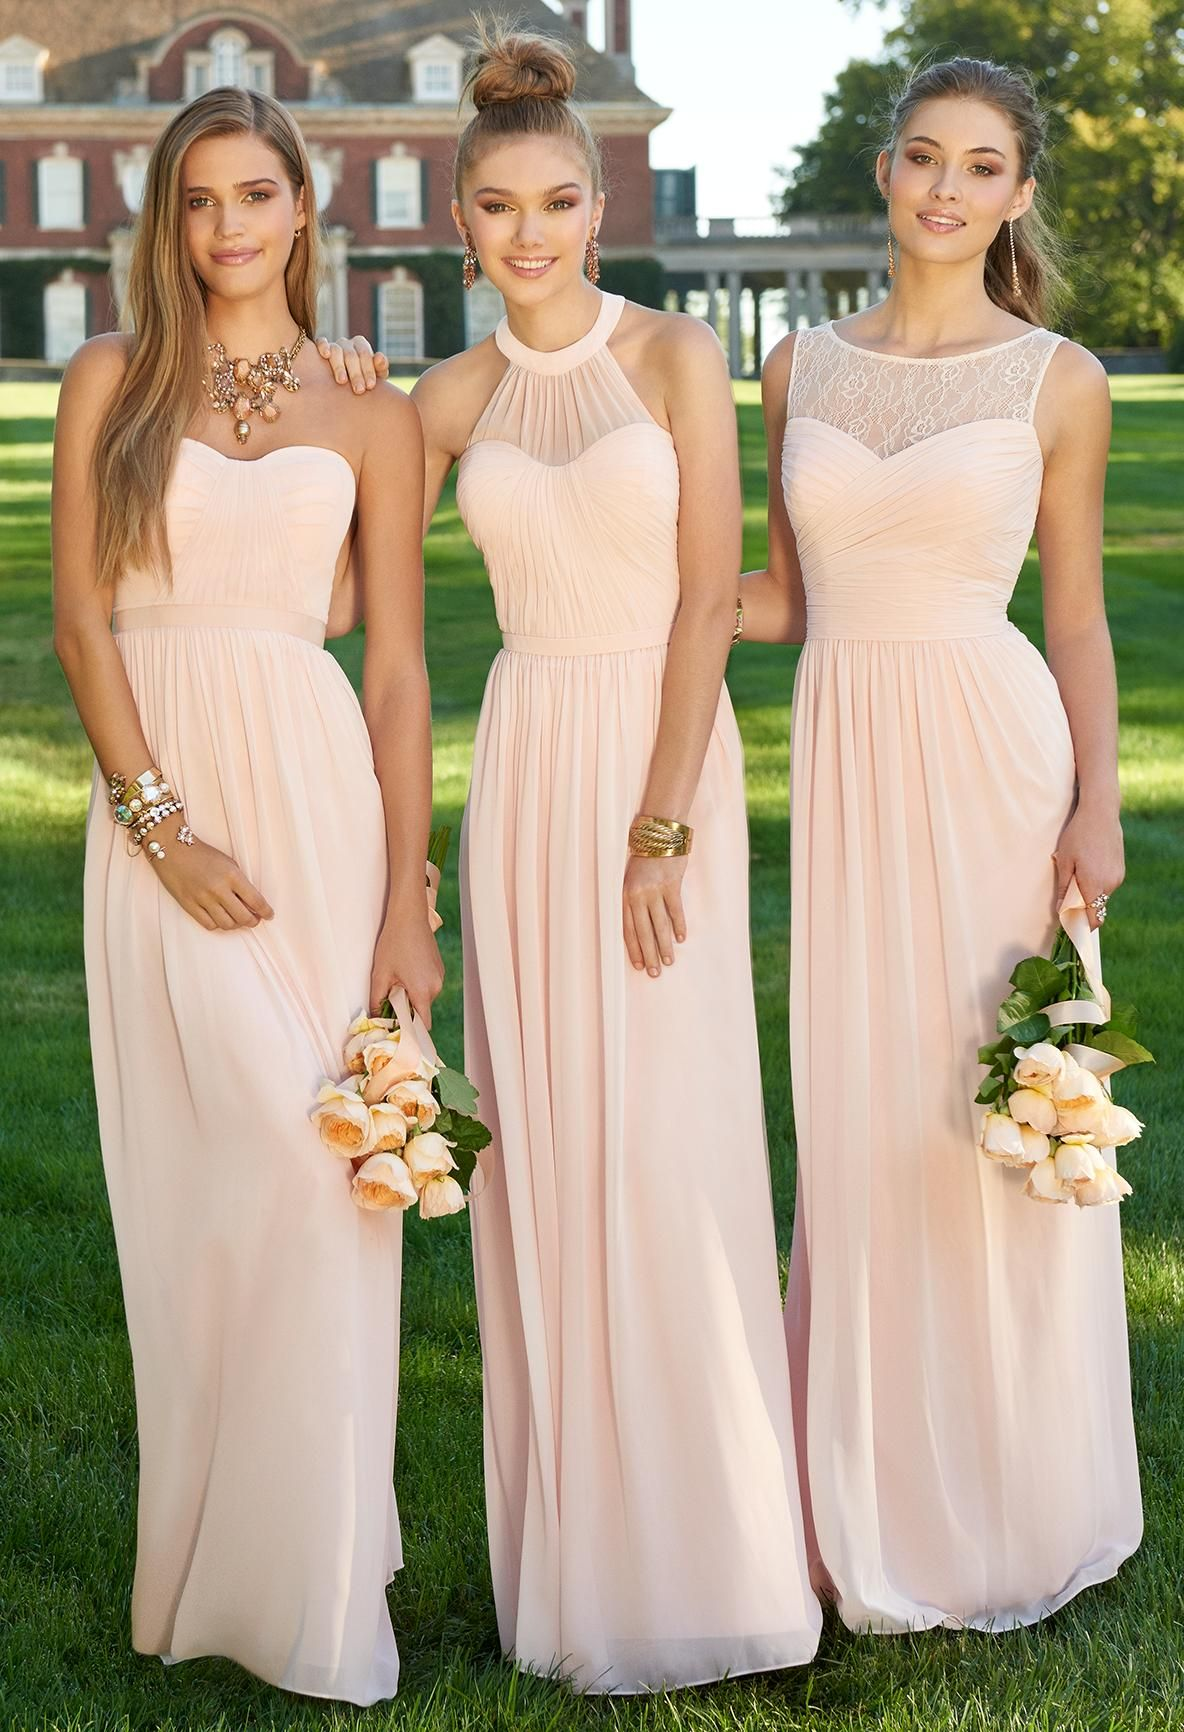 Nude and blush gowns shop now programming girls and wedding beautiful bridesmaid dresses ombrellifo Image collections